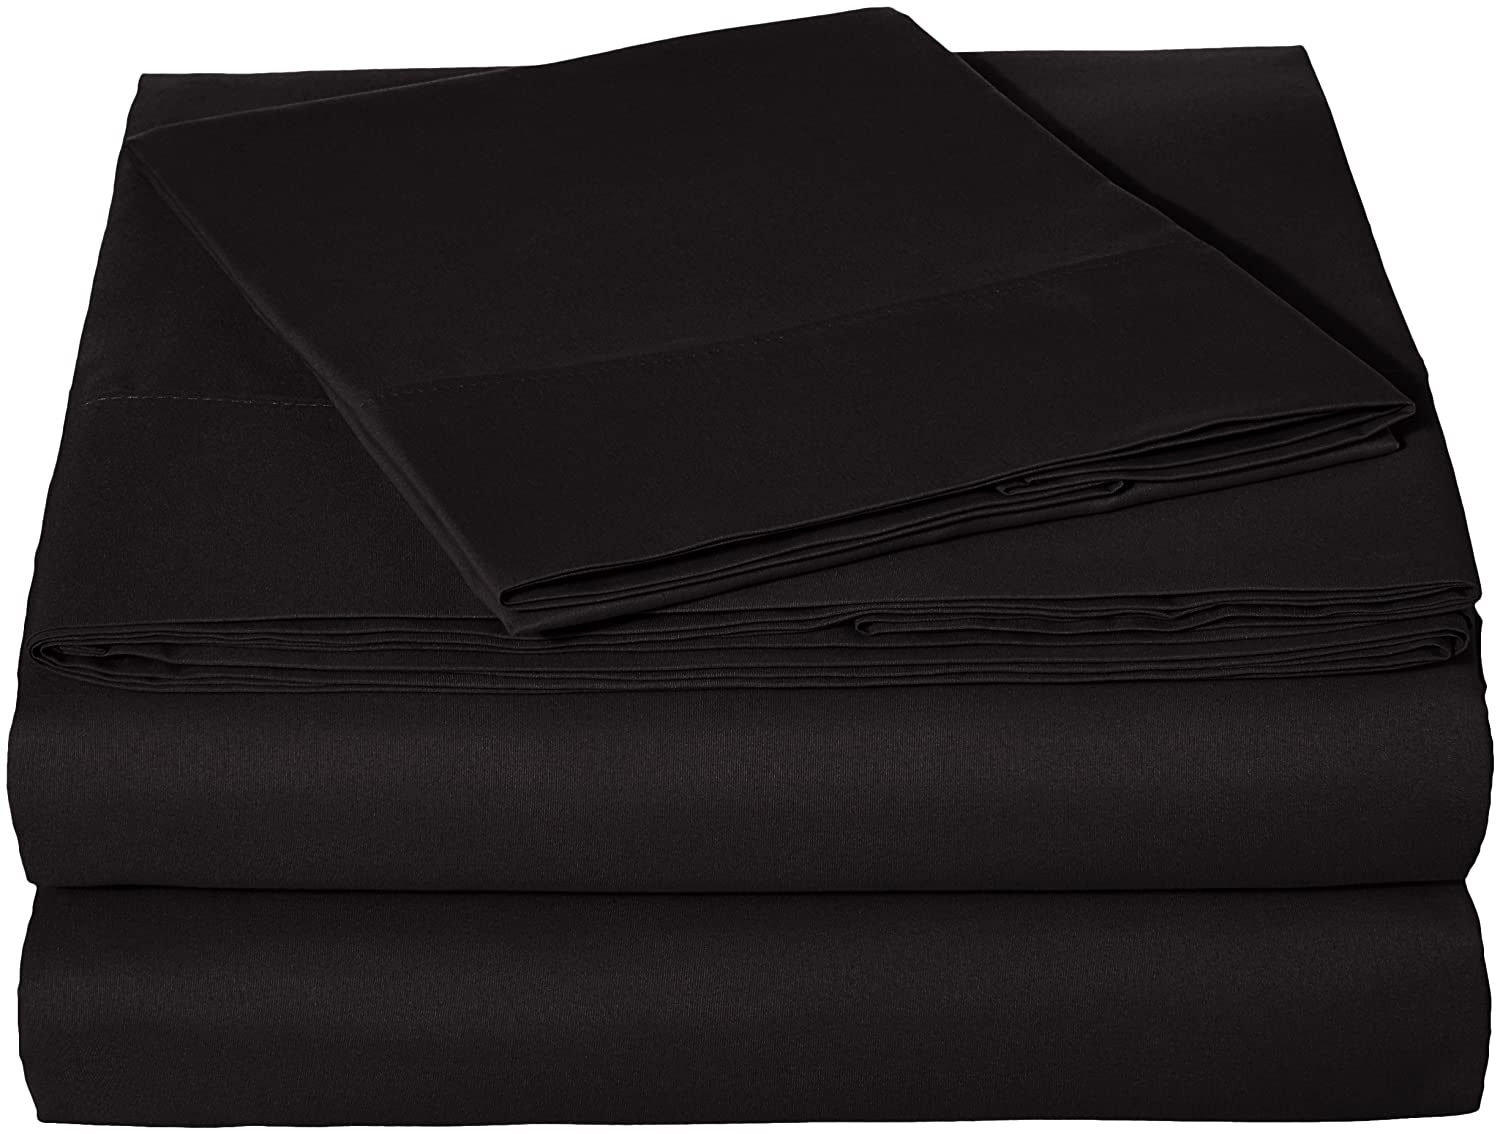 AmazonBasics Microfiber Sheet Set - Twin, Black